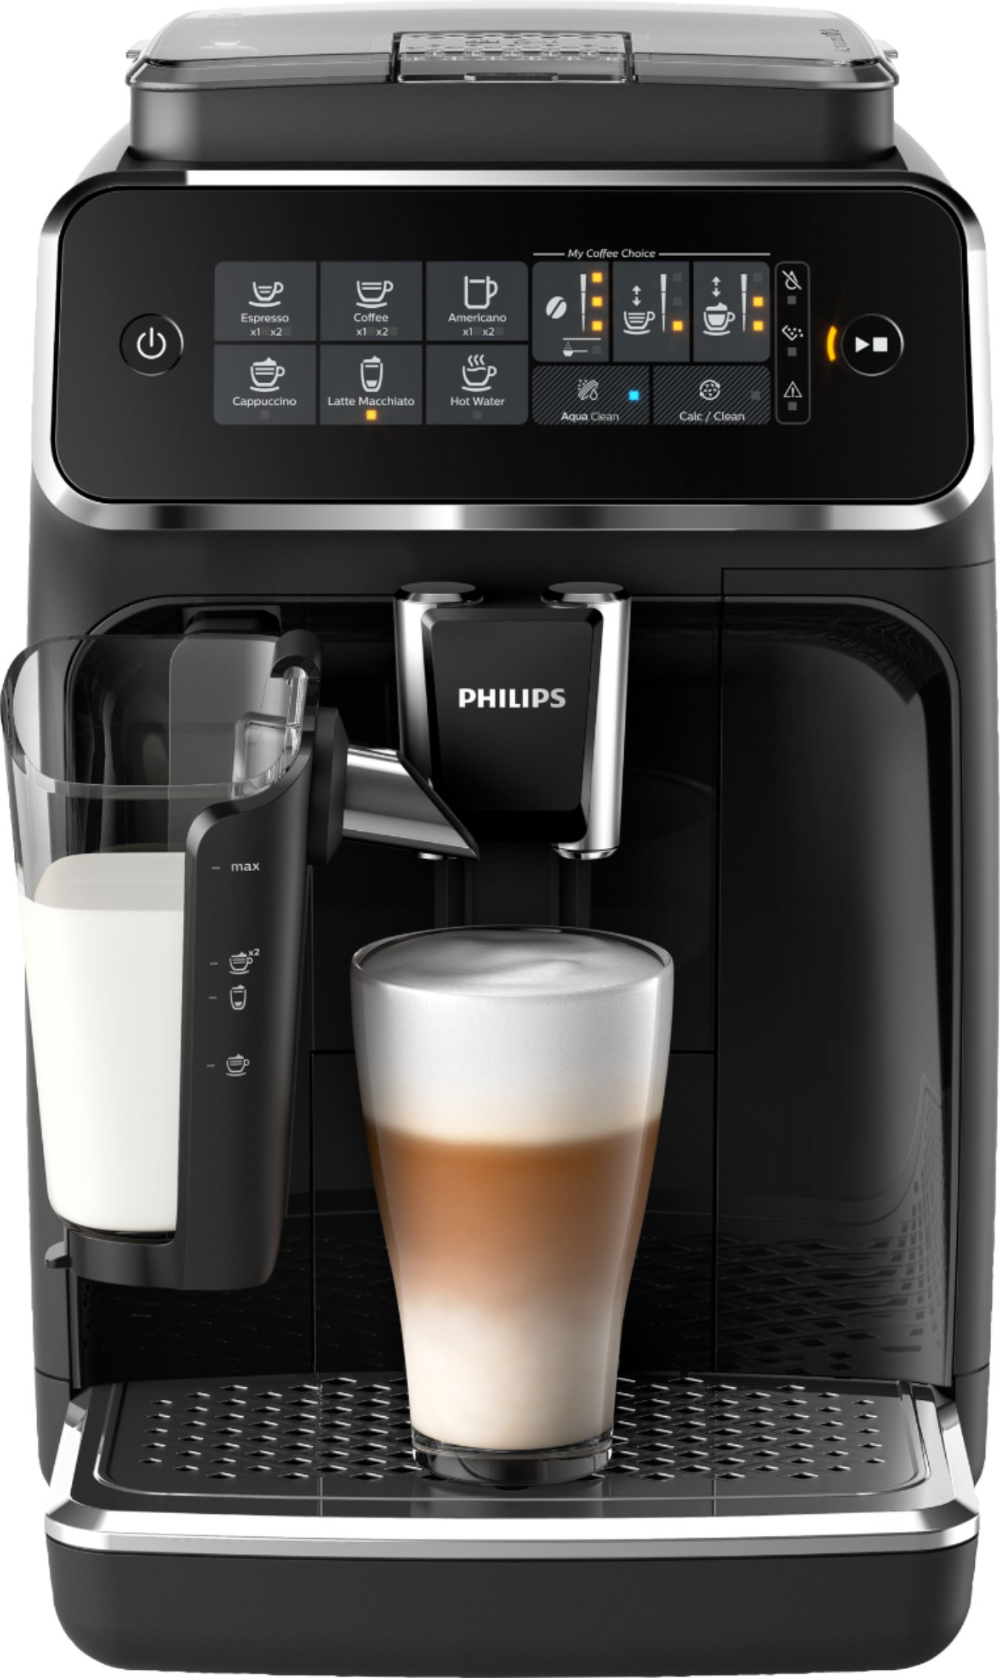 Philips 3200 Series Fully Automatic Espresso Machine w